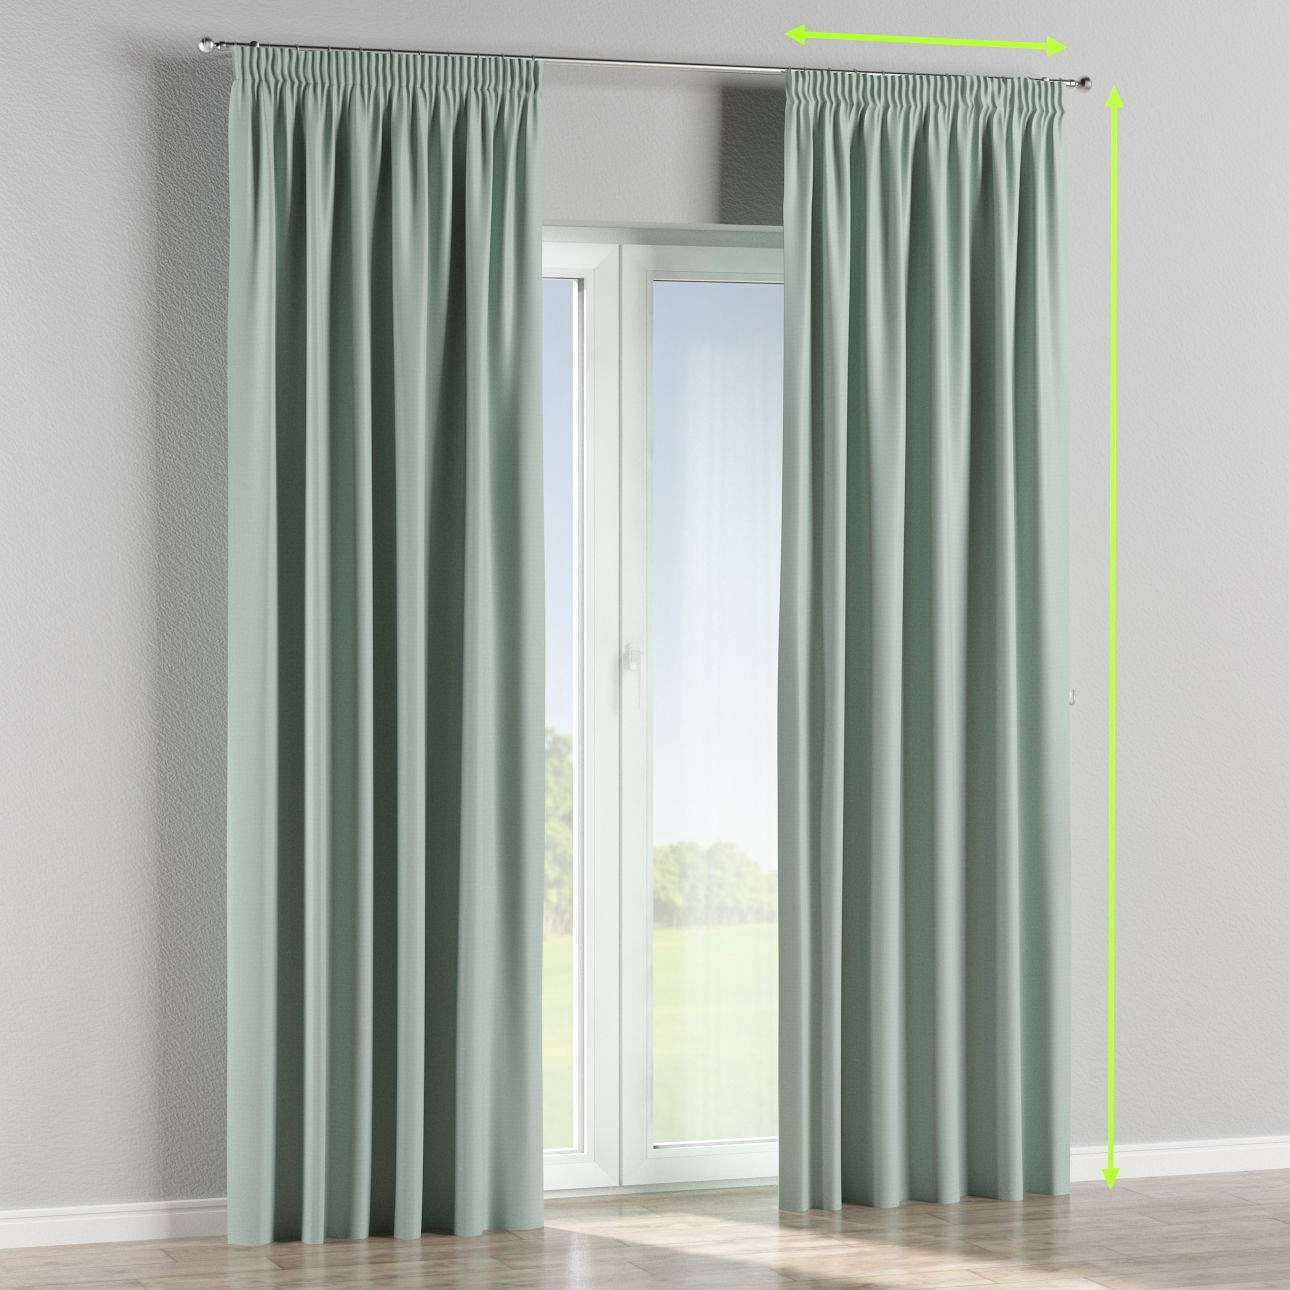 Pencil pleat curtains in collection Blackout, fabric: 269-61